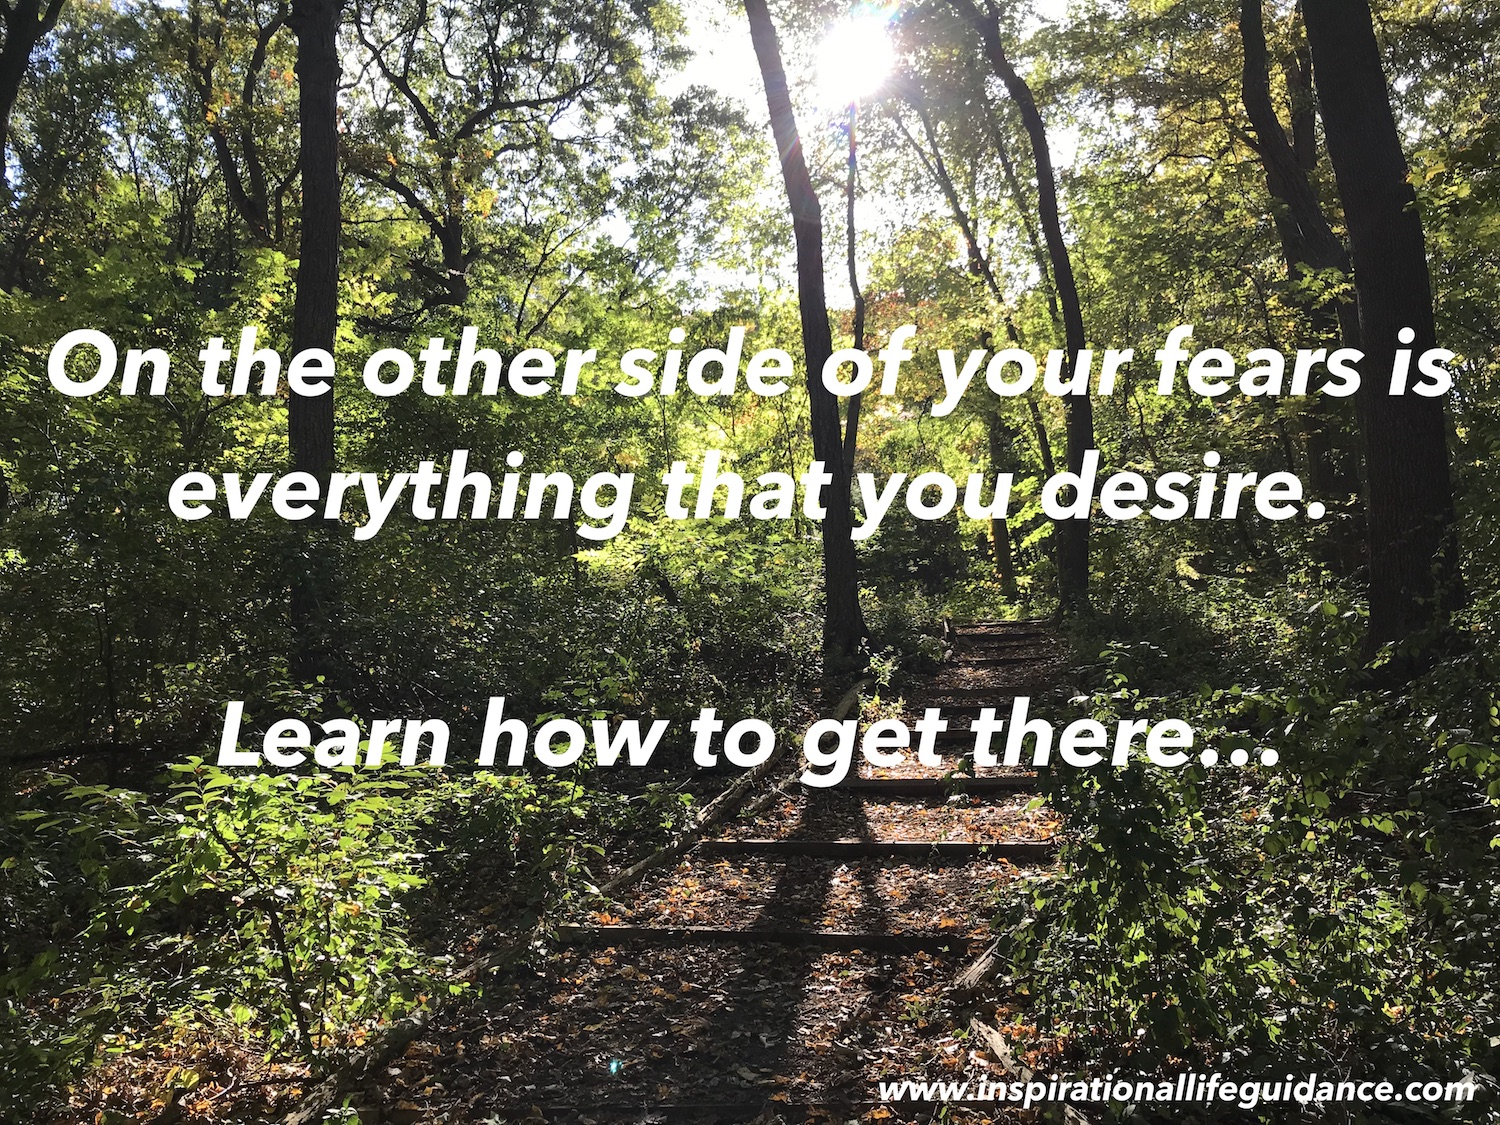 On the other side of your fears is everything that you desire. Learn how to get there. By South Windsor, Hartford County, Connecticut Life Coach and Life Consultant and Queens, New York Life Coach and Life Consultant Jonathan R. Wachtel. Seeking a psychologist, therapist, counselor, or coach in South Windsor, CT, Hartford County, Connecticut, CT, Wapping, CT, Windsor, CT, East Windsor, CT, Windsor Locks, CT, Manchester, CT, Vernon, CT, West Hartford, CT, East Hartford, CT, Hartford, CT, Glastonbury, CT, Farmington, CT, Bloomfield, CT, Ellington, CT, Bolton, CT, Somers, CT, Enfield, CT, Suffield, CT, Tolland, CT, Willington, CT, Stafford, CT, Granby, CT, Addison, CT, Wethersfield, CT, Newington, CT, Simsbury, CT, Avon, CT, East Granby, CT, Canton, CT, Marlborough, CT, Rocky Hill, CT, Cromwell, CT, Andover, CT, Coventry, CT, New Britain, CT, Berlin, CT, Kensington, CT, East Hampton, CT, Portland, CT, Middletown, CT, Middlefield, CT, Hebron, CT, Columbia, CT, Mansfield, CT, Colchester, CT, Lebanon, CT, Windham, CT, Chaplin, CT, Hampton, CT, Ashford, CT, Eastford, CT, Union, CT, Hartland, CT, Barkhamsted, CT, Southington, CT, Bristol, CT, Meriden, CT, Cheshire, CT, Durham, CT, Wallingford, CT, Northford, CT, Hamden, CT, Bozrah, CT, Sprague, CT, Lisbon, CT, Salem, CT, East Haddam, CT, Chester, CT, Lyme, CT, Essex, CT, Montville, CT, Norwich, CT, Preston, CT, Ledyard, CT, New London, CT, Lisbon, CT, Plainfield, CT, Brooklyn, CT, Pomfret, CT, Woodstock, CT, Putnam, CT, Killingly, CT, Sterling, CT, North Stonington, CT, Stonington, CT, East Lyme, CT, Old Lyme, CT, Old Saybrook, CT, Madison, CT, Guilford, CT, North Branford, CT, Branford, CT, New Haven, CT, West Haven, CT, Wolcott, CT, Waterbury, CT, Naugatuck, CT, Middlebury, CT, Woodbury, CT, Watertown, CT, Thomaston, CT, Burlington, CT, Harwinton, CT, Torrington, CT,  New Hartford, CT, Winchester, CT, Colebrook, CT, Norfolk, CT, Goshen, CT, Litchfield, CT, Morris, CT, Bethlehem, CT, Southbury, CT, Cornwall, CT, Warren, CT, Canaan, CT, North Canaan, CT, Salisbury, CT, Sharon, CT, Kent, CT, Roxbury, CT, New Milford, CT, Brookfield, CT, Fairfield, CT, Newtown, CT, Monroe, CT, Shelton, CT, Milford, CT, Trumbull, CT, Bridgeport, CT, Bethel, CT, Redding, CT, Danbury, CT, New Fairfield, CT, Ridgefield, CT, Wilton, CT, Westport, CT, Norwalk, CT, New Canaan, CT, Darien, CT, Stamford, CT, Greenwich, CT, Agawam, MA, East Longmeadow, MA, Springfield, MA, Southwick, MA, Granville, MA, Tolland, MA, Westfield, MA, Chicopee, MA, Wilbraham, MA, Ludlow, MA, Monson, MA, Wales, MA, Holland, MA, Brimfield, MA, Palmer, MA, Ludlow, MA, Holyoke, MA, Russell, MA, Blandford, MA, or in Kew Gardens, NY, Forest Hills, NY, Forest Hills Gardens, NY, Kew Garden Hills, NY, Queens, NY, Brooklyn, NY, Manhattan, NY, Nassau County, Long Island, NY, Suffolk County, Long Island, NY, Staten Island, the Bronx, New York City, New York State, or anywhere? Contact South Windsor, Connecticut, Hartford County, CT, Life Coach and Life Consultant and Kew Gardens, Queens, New York City, New York Life Coach and Life Consultant Jonathan to speak with a Life Coach & Life Consultant, Dating Coach & Dating Consultant, Relationship Coach & Relationship Consultant, Career Coach & Career Consultant, Business Coach & Business Consultant, Marketing Coach & Marketing Consultant, SEO Expert and SEO Consultant, Health Coach & Health Consultant, Success Coach & Success Consultant, Law Of Attraction Coach & Law Of Attraction Consultant, in South Windsor, CT, Hartford County, Connecticut, CT, Wapping, CT, near Windsor, CT, East Windsor, CT, Windsor Locks, CT, Manchester, CT, Vernon, CT, West Hartford, CT, East Hartford, CT, Hartford, CT, Glastonbury, CT, Farmington, CT, Bloomfield, CT, Ellington, CT, Bolton, CT, Somers, CT, Enfield, CT, Suffield, CT, Tolland, CT, Willington, CT, Stafford, CT, Granby, CT, Addison, CT, Wethersfield, CT, Newington, CT, Simsbury, CT, Avon, CT, East Granby, CT, Canton, CT, Marlborough, CT, Rocky Hill, CT, Cromwell, CT, Andover, CT, Coventry, CT, New Britain, CT, Berlin, CT, Kensington, CT, East Hampton, CT, Portland, CT, Middletown, CT, Middlefield, CT, Hebron, CT, Columbia, CT, Mansfield, CT, Colchester, CT, Lebanon, CT, Windham, CT, Chaplin, CT, Hampton, CT, Ashford, CT, Eastford, CT, Union, CT, Hartland, CT, Barkhamsted, CT, Southington, CT, Bristol, CT, Meriden, CT, Cheshire, CT, Durham, CT, Wallingford, CT, Northford, CT, Hamden, CT, Bozrah, CT, Sprague, CT, Lisbon, CT, Salem, CT, East Haddam, CT, Chester, CT, Lyme, CT, Essex, CT, Montville, CT, Norwich, CT, Preston, CT, Ledyard, CT, New London, CT, Lisbon, CT, Plainfield, CT, Brooklyn, CT, Pomfret, CT, Woodstock, CT, Putnam, CT, Killingly, CT, Sterling, CT, North Stonington, CT, Stonington, CT, East Lyme, CT, Old Lyme, CT, Old Saybrook, CT, Madison, CT, Guilford, CT, North Branford, CT, Branford, CT, New Haven, CT, West Haven, CT, Wolcott, CT, Waterbury, CT, Naugatuck, CT, Middlebury, CT, Woodbury, CT, Watertown, CT, Thomaston, CT, Burlington, CT, Harwinton, CT, Torrington, CT,  New Hartford, CT, Winchester, CT, Colebrook, CT, Norfolk, CT, Goshen, CT, Litchfield, CT, Morris, CT, Bethlehem, CT, Southbury, CT, Cornwall, CT, Warren, CT, Canaan, CT, North Canaan, CT, Salisbury, CT, Sharon, CT, Kent, CT, Roxbury, CT, New Milford, CT, Brookfield, CT, Fairfield, CT, Newtown, CT, Monroe, CT, Shelton, CT, Milford, CT, Trumbull, CT, Bridgeport, CT, Bethel, CT, Redding, CT, Danbury, CT, New Fairfield, CT, Ridgefield, CT, Wilton, CT, Westport, CT, Norwalk, CT, New Canaan, CT, Darien, CT, Stamford, CT, Greenwich, CT, Agawam, MA, East Longmeadow, MA, Springfield, MA, Southwick, MA, Granville, MA, Tolland, MA, Westfield, MA, Chicopee, MA, Wilbraham, MA, Ludlow, MA, Monson, MA, Wales, MA, Holland, MA, Brimfield, MA, Palmer, MA, Ludlow, MA, Holyoke, MA, Russell, MA, Blandford, MA, formerly in Kew Gardens, Queens, New York City, New York, NY, near the Upper East Side of Manhattan, near Chelsea, NY, near Westchester, NY, near the Hamptons, on Long Island, NY, serving South Windsor, CT, Hartford County, Connecticut, CT, Wapping, CT, Windsor, CT, East Windsor, CT, Windsor Locks, CT, Manchester, CT, Vernon, CT, West Hartford, CT, East Hartford, CT, Hartford, CT, Glastonbury, CT, Farmington, CT, Bloomfield, CT, Ellington, CT, Bolton, CT, Somers, CT, Enfield, CT, Suffield, CT, Tolland, CT, Willington, CT, Stafford, CT, Granby, CT, Addison, CT, Wethersfield, CT, Newington, CT, Simsbury, CT, Avon, CT, East Granby, CT, Canton, CT, Marlborough, CT, Rocky Hill, CT, Cromwell, CT, Andover, CT, Coventry, CT, New Britain, CT, Berlin, CT, Kensington, CT, East Hampton, CT, Portland, CT, Middletown, CT, Middlefield, CT, Hebron, CT, Columbia, CT, Mansfield, CT, Colchester, CT, Lebanon, CT, Windham, CT, Chaplin, CT, Hampton, CT, Ashford, CT, Eastford, CT, Union, CT, Hartland, CT, Barkhamsted, CT, Southington, CT, Bristol, CT, Meriden, CT, Cheshire, CT, Durham, CT, Wallingford, CT, Northford, CT, Hamden, CT, Bozrah, CT, Sprague, CT, Lisbon, CT, Salem, CT, East Haddam, CT, Chester, CT, Lyme, CT, Essex, CT, Montville, CT, Norwich, CT, Preston, CT, Ledyard, CT, New London, CT, Lisbon, CT, Plainfield, CT, Brooklyn, CT, Pomfret, CT, Woodstock, CT, Putnam, CT, Killingly, CT, Sterling, CT, North Stonington, CT, Stonington, CT, East Lyme, CT, Old Lyme, CT, Old Saybrook, CT, Madison, CT, Guilford, CT, North Branford, CT, Branford, CT, New Haven, CT, West Haven, CT, Wolcott, CT, Waterbury, CT, Naugatuck, CT, Middlebury, CT, Woodbury, CT, Watertown, CT, Thomaston, CT, Burlington, CT, Harwinton, CT, Torrington, CT,  New Hartford, CT, Winchester, CT, Colebrook, CT, Norfolk, CT, Goshen, CT, Litchfield, CT, Morris, CT, Bethlehem, CT, Southbury, CT, Cornwall, CT, Warren, CT, Canaan, CT, North Canaan, CT, Salisbury, CT, Sharon, CT, Kent, CT, Roxbury, CT, New Milford, CT, Brookfield, CT, Fairfield, CT, Newtown, CT, Monroe, CT, Shelton, CT, Milford, CT, Trumbull, CT, Bridgeport, CT, Bethel, CT, Redding, CT, Danbury, CT, New Fairfield, CT, Ridgefield, CT, Wilton, CT, Westport, CT, Norwalk, CT, New Canaan, CT, Darien, CT, Stamford, CT, Greenwich, CT, Agawam, MA, East Longmeadow, MA, Springfield, MA, Southwick, MA, Granville, MA, Tolland, MA, Westfield, MA, Chicopee, MA, Wilbraham, MA, Ludlow, MA, Monson, MA, Wales, MA, Holland, MA, Brimfield, MA, Palmer, MA, Ludlow, MA, Holyoke, MA, Russell, MA, Blandford, MA, as well as Kew Gardens, NY, Forest Hills, NY, Forest Hills Gardens, NY, Kew Garden Hills, NY, all of Queens, NY, Brooklyn, NY, Manhattan, NY, Nassau County, Long Island, NY, Suffolk County, Long Island, NY, Staten Island, the Bronx, all of Connecticut, Massachusetts, and New York State, and surrounding areas, and on the phone or online anywhere. Contact South Windsor, Connecticut, Hartford County, Connecticut Life Coach and Life Consultant and Kew Gardens, Queens, New York City, New York Life Coach and Life Consultant Jonathan for Life Coaching, Dating Coaching & Dating Consulting, Relationship Coaching & Relationship Consulting, Career Coaching & Career Consulting, Business Coaching & Business Consulting, Marketing Coaching & Marketing Consulting, SEO Expertise & SEO Consulting, Health Coaching & Health Consulting, Success Coaching & Success Consulting, Law Of Attraction Coaching & Law Of Attraction Consulting, in South Windsor, CT, Hartford County, Connecticut, CT, Wapping, CT, Windsor, CT, East Windsor, CT, Windsor Locks, CT, Manchester, CT, Vernon, CT, West Hartford, CT, East Hartford, CT, Hartford, CT, Glastonbury, CT, Farmington, CT, Bloomfield, CT, Ellington, CT, Bolton, CT, Somers, CT, Enfield, CT, Suffield, CT, Tolland, CT, Willington, CT, Stafford, CT, Granby, CT, Addison, CT, Wethersfield, CT, Newington, CT, Simsbury, CT, Avon, CT, East Granby, CT, Canton, CT, Marlborough, CT, Rocky Hill, CT, Cromwell, CT, Andover, CT, Coventry, CT, New Britain, CT, Berlin, CT, Kensington, CT, East Hampton, CT, Portland, CT, Middletown, CT, Middlefield, CT, Hebron, CT, Columbia, CT, Mansfield, CT, Colchester, CT, Lebanon, CT, Windham, CT, Chaplin, CT, Hampton, CT, Ashford, CT, Eastford, CT, Union, CT, Hartland, CT, Barkhamsted, CT, Southington, CT, Bristol, CT, Meriden, CT, Cheshire, CT, Durham, CT, Wallingford, CT, Northford, CT, Hamden, CT, Bozrah, CT, Sprague, CT, Lisbon, CT, Salem, CT, East Haddam, CT, Chester, CT, Lyme, CT, Essex, CT, Montville, CT, Norwich, CT, Preston, CT, Ledyard, CT, New London, CT, Lisbon, CT, Plainfield, CT, Brooklyn, CT, Pomfret, CT, Woodstock, CT, Putnam, CT, Killingly, CT, Sterling, CT, North Stonington, CT, Stonington, CT, East Lyme, CT, Old Lyme, CT, Old Saybrook, CT, Madison, CT, Guilford, CT, North Branford, CT, Branford, CT, New Haven, CT, West Haven, CT, Wolcott, CT, Waterbury, CT, Naugatuck, CT, Middlebury, CT, Woodbury, CT, Watertown, CT, Thomaston, CT, Burlington, CT, Harwinton, CT, Torrington, CT,  New Hartford, CT, Winchester, CT, Colebrook, CT, Norfolk, CT, Goshen, CT, Litchfield, CT, Morris, CT, Bethlehem, CT, Southbury, CT, Cornwall, CT, Warren, CT, Canaan, CT, North Canaan, CT, Salisbury, CT, Sharon, CT, Kent, CT, Roxbury, CT, New Milford, CT, Brookfield, CT, Fairfield, CT, Newtown, CT, Monroe, CT, Shelton, CT, Milford, CT, Trumbull, CT, Bridgeport, CT, Bethel, CT, Redding, CT, Danbury, CT, New Fairfield, CT, Ridgefield, CT, Wilton, CT, Westport, CT, Norwalk, CT, New Canaan, CT, Darien, CT, Stamford, CT, Greenwich, CT, Agawam, MA, East Longmeadow, MA, Springfield, MA, Southwick, MA, Granville, MA, Tolland, MA, Westfield, MA, Chicopee, MA, Wilbraham, MA, Ludlow, MA, Monson, MA, Wales, MA, Holland, MA, Brimfield, MA, Palmer, MA, Ludlow, MA, Holyoke, MA, Russell, MA, Blandford, MA, and also in Kew Gardens, Queens, New York City, New York, NY, near the Upper East Side of Manhattan, near Chelsea, NY, near Westchester, NY, near the Hamptons, on Long Island, NY, serving South Windsor, CT, Hartford County, Connecticut, CT, Wapping, CT, Windsor, CT, East Windsor, CT, Windsor Locks, CT, Manchester, CT, Vernon, CT, West Hartford, CT, East Hartford, CT, Hartford, CT, Glastonbury, CT, Farmington, CT, Bloomfield, CT, Ellington, CT, Bolton, CT, Somers, CT, Enfield, CT, Suffield, CT, Tolland, CT, Willington, CT, Stafford, CT, Granby, CT, Addison, CT, Wethersfield, CT, Newington, CT, Simsbury, CT, Avon, CT, East Granby, CT, Canton, CT, Marlborough, CT, Rocky Hill, CT, Cromwell, CT, Andover, CT, Coventry, CT, New Britain, CT, Berlin, CT, Kensington, CT, East Hampton, CT, Portland, CT, Middletown, CT, Middlefield, CT, Hebron, CT, Columbia, CT, Mansfield, CT, Colchester, CT, Lebanon, CT, Windham, CT, Chaplin, CT, Hampton, CT, Ashford, CT, Eastford, CT, Union, CT, Hartland, CT, Barkhamsted, CT, Southington, CT, Bristol, CT, Meriden, CT, Cheshire, CT, Durham, CT, Wallingford, CT, Northford, CT, Hamden, CT, Bozrah, CT, Sprague, CT, Lisbon, CT, Salem, CT, East Haddam, CT, Chester, CT, Lyme, CT, Essex, CT, Montville, CT, Norwich, CT, Preston, CT, Ledyard, CT, New London, CT, Lisbon, CT, Plainfield, CT, Brooklyn, CT, Pomfret, CT, Woodstock, CT, Putnam, CT, Killingly, CT, Sterling, CT, North Stonington, CT, Stonington, CT, East Lyme, CT, Old Lyme, CT, Old Saybrook, CT, Madison, CT, Guilford, CT, North Branford, CT, Branford, CT, New Haven, CT, West Haven, CT, Wolcott, CT, Waterbury, CT, Naugatuck, CT, Middlebury, CT, Woodbury, CT, Watertown, CT, Thomaston, CT, Burlington, CT, Harwinton, CT, Torrington, CT,  New Hartford, CT, Winchester, CT, Colebrook, CT, Norfolk, CT, Goshen, CT, Litchfield, CT, Morris, CT, Bethlehem, CT, Southbury, CT, Cornwall, CT, Warren, CT, Canaan, CT, North Canaan, CT, Salisbury, CT, Sharon, CT, Kent, CT, Roxbury, CT, New Milford, CT, Brookfield, CT, Fairfield, CT, Newtown, CT, Monroe, CT, Shelton, CT, Milford, CT, Trumbull, CT, Bridgeport, CT, Bethel, CT, Redding, CT, Danbury, CT, New Fairfield, CT, Ridgefield, CT, Wilton, CT, Westport, CT, Norwalk, CT, New Canaan, CT, Darien, CT, Stamford, CT, Greenwich, CT, Agawam, MA, East Longmeadow, MA, Springfield, MA, Southwick, MA, Granville, MA, Tolland, MA, Westfield, MA, Chicopee, MA, Wilbraham, MA, Ludlow, MA, Monson, MA, Wales, MA, Holland, MA, Brimfield, MA, Palmer, MA, Ludlow, MA, Holyoke, MA, Russell, MA, Blandford, MA, and also Kew Gardens, NY, Forest Hills, NY, Forest Hills Gardens, NY, Kew Garden Hills, NY, all of Queens, NY, Brooklyn, NY, Manhattan, NY, Nassau County, Long Island, NY, Suffolk County, Long Island, NY, Staten Island, the Bronx, all of Connecticut, Massachusetts, New York State, and surrounding areas, and on the phone or online anywhere. If you're seeking therapy, counseling, or coaching in South Windsor, CT, Hartford County, Connecticut, CT, Wapping, CT, Windsor, CT, East Windsor, CT, Windsor Locks, CT, Manchester, CT, Vernon, CT, West Hartford, CT, East Hartford, CT, Hartford, CT, Glastonbury, CT, Farmington, CT, Bloomfield, CT, Ellington, CT, Bolton, CT, Somers, CT, Enfield, CT, Suffield, CT, Tolland, CT, Willington, CT, Stafford, CT, Granby, CT, Addison, CT, Wethersfield, CT, Newington, CT, Simsbury, CT, Avon, CT, East Granby, CT, Canton, CT, Marlborough, CT, Rocky Hill, CT, Cromwell, CT, Andover, CT, Coventry, CT, New Britain, CT, Berlin, CT, Kensington, CT, East Hampton, CT, Portland, CT, Middletown, CT, Middlefield, CT, Hebron, CT, Columbia, CT, Mansfield, CT, Colchester, CT, Lebanon, CT, Windham, CT, Chaplin, CT, Hampton, CT, Ashford, CT, Eastford, CT, Union, CT, Hartland, CT, Barkhamsted, CT, Southington, CT, Bristol, CT, Meriden, CT, Cheshire, CT, Durham, CT, Wallingford, CT, Northford, CT, Hamden, CT, Bozrah, CT, Sprague, CT, Lisbon, CT, Salem, CT, East Haddam, CT, Chester, CT, Lyme, CT, Essex, CT, Montville, CT, Norwich, CT, Preston, CT, Ledyard, CT, New London, CT, Lisbon, CT, Plainfield, CT, Brooklyn, CT, Pomfret, CT, Woodstock, CT, Putnam, CT, Killingly, CT, Sterling, CT, North Stonington, CT, Stonington, CT, East Lyme, CT, Old Lyme, CT, Old Saybrook, CT, Madison, CT, Guilford, CT, North Branford, CT, Branford, CT, New Haven, CT, West Haven, CT, Wolcott, CT, Waterbury, CT, Naugatuck, CT, Middlebury, CT, Woodbury, CT, Watertown, CT, Thomaston, CT, Burlington, CT, Harwinton, CT, Torrington, CT,  New Hartford, CT, Winchester, CT, Colebrook, CT, Norfolk, CT, Goshen, CT, Litchfield, CT, Morris, CT, Bethlehem, CT, Southbury, CT, Cornwall, CT, Warren, CT, Canaan, CT, North Canaan, CT, Salisbury, CT, Sharon, CT, Kent, CT, Roxbury, CT, New Milford, CT, Brookfield, CT, Fairfield, CT, Newtown, CT, Monroe, CT, Shelton, CT, Milford, CT, Trumbull, CT, Bridgeport, CT, Bethel, CT, Redding, CT, Danbury, CT, New Fairfield, CT, Ridgefield, CT, Wilton, CT, Westport, CT, Norwalk, CT, New Canaan, CT, Darien, CT, Stamford, CT, Greenwich, CT, Agawam, MA, East Longmeadow, MA, Springfield, MA, Southwick, MA, Granville, MA, Tolland, MA, Westfield, MA, Chicopee, MA, Wilbraham, MA, Ludlow, MA, Monson, MA, Wales, MA, Holland, MA, Brimfield, MA, Palmer, MA, Ludlow, MA, Holyoke, MA, Russell, MA, Blandford, MA, or in Kew Gardens, NY, Forest Hills, NY, Forest Hills Gardens, NY, Kew Garden Hills, NY, Queens, NY, Brooklyn, NY, Manhattan, NY, Nassau County, Long Island, NY, Suffolk County, Long Island, NY, Staten Island, the Bronx, New York City, New York State, or surrounding areas, contact South Windsor, Hartford County, Connecticut Life Coach and New York Life Coach Jonathan.